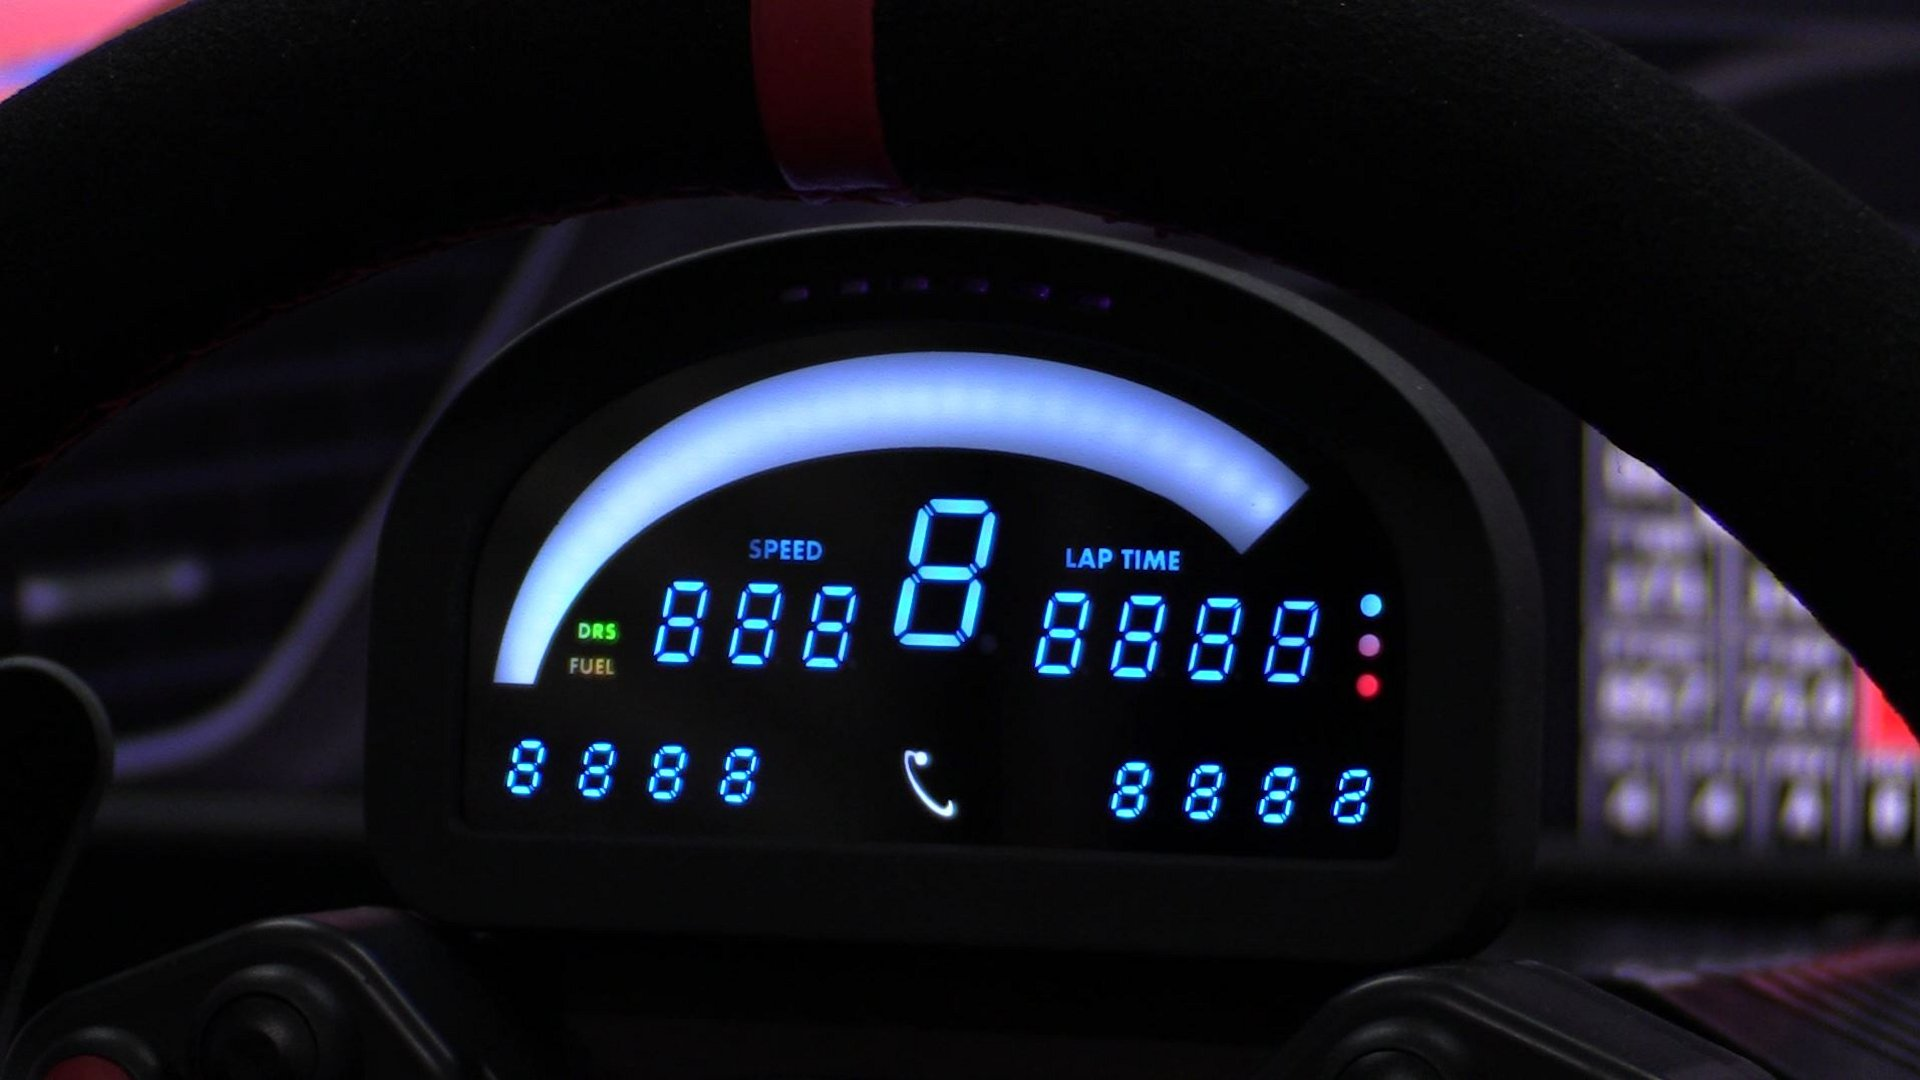 Renovatio SRD-R3 Digital Dash Display Review